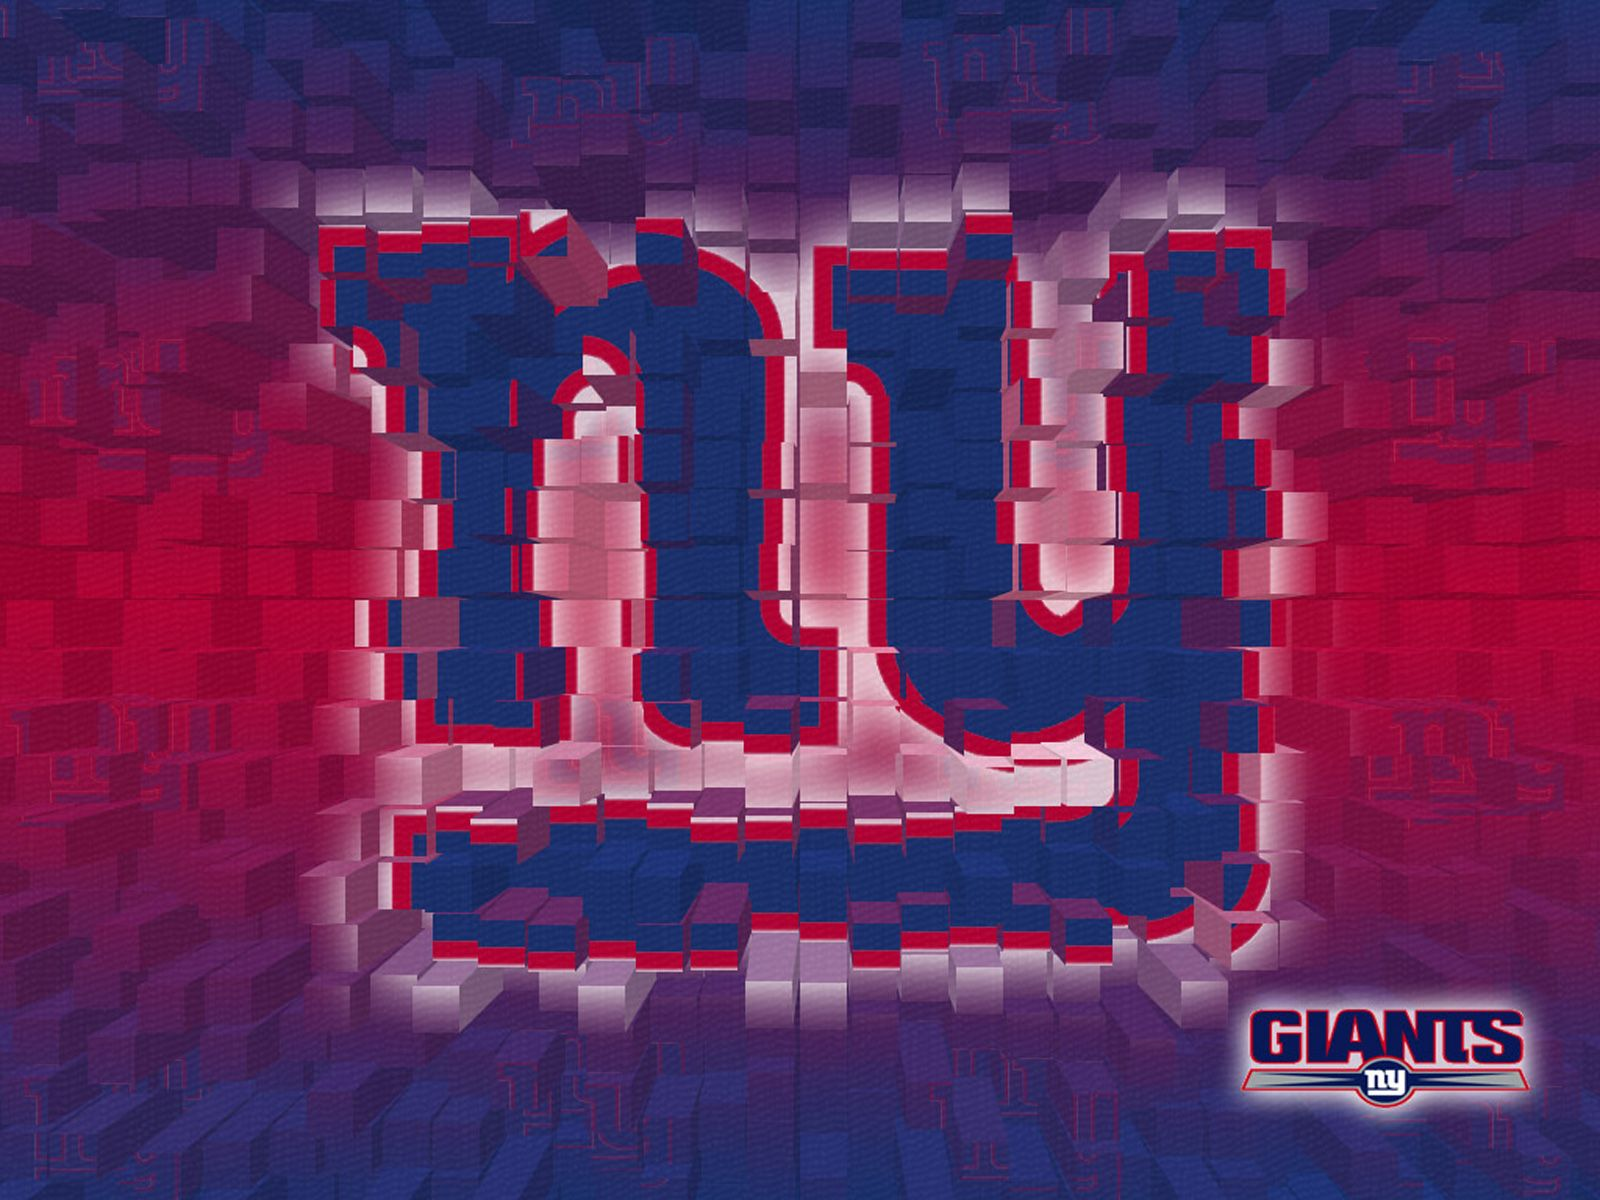 New York Giants Logo Wallpaper Posted By Michelle Simpson